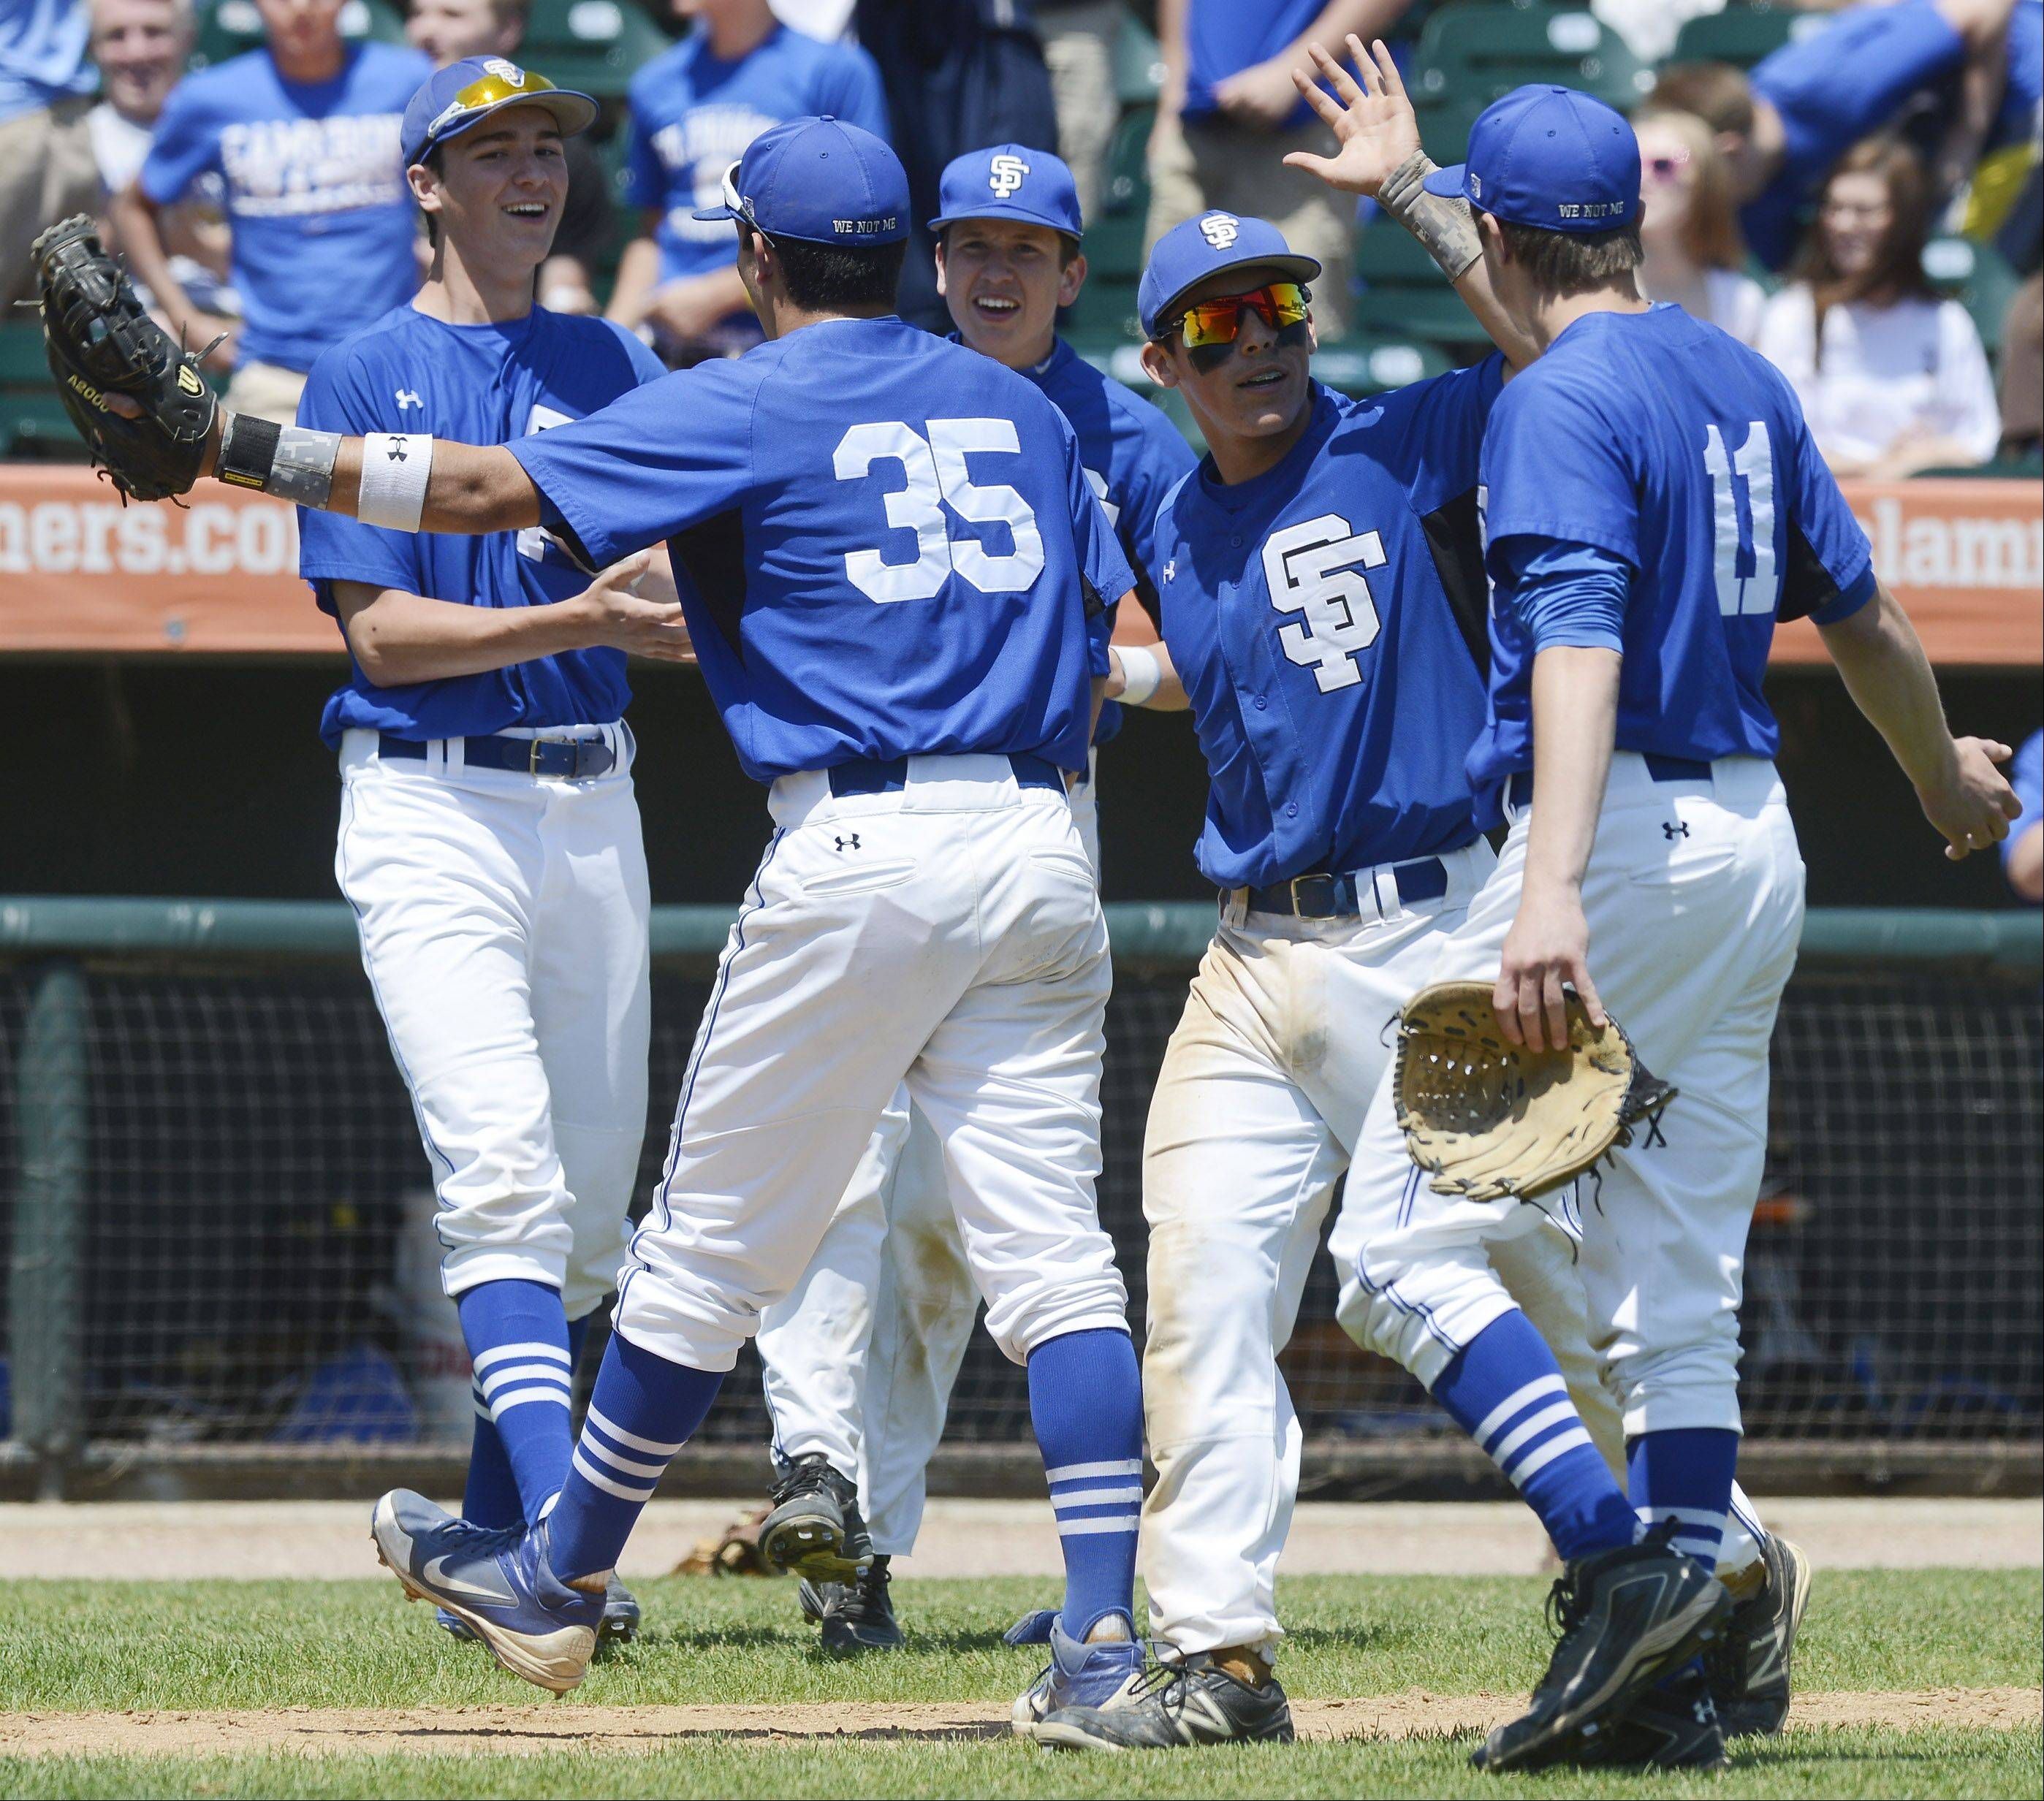 St. Francis players celebrate their victory over Grayslake Central during the Class 3A state baseball semifinal at Silver Cross Field in Joliet Friday.